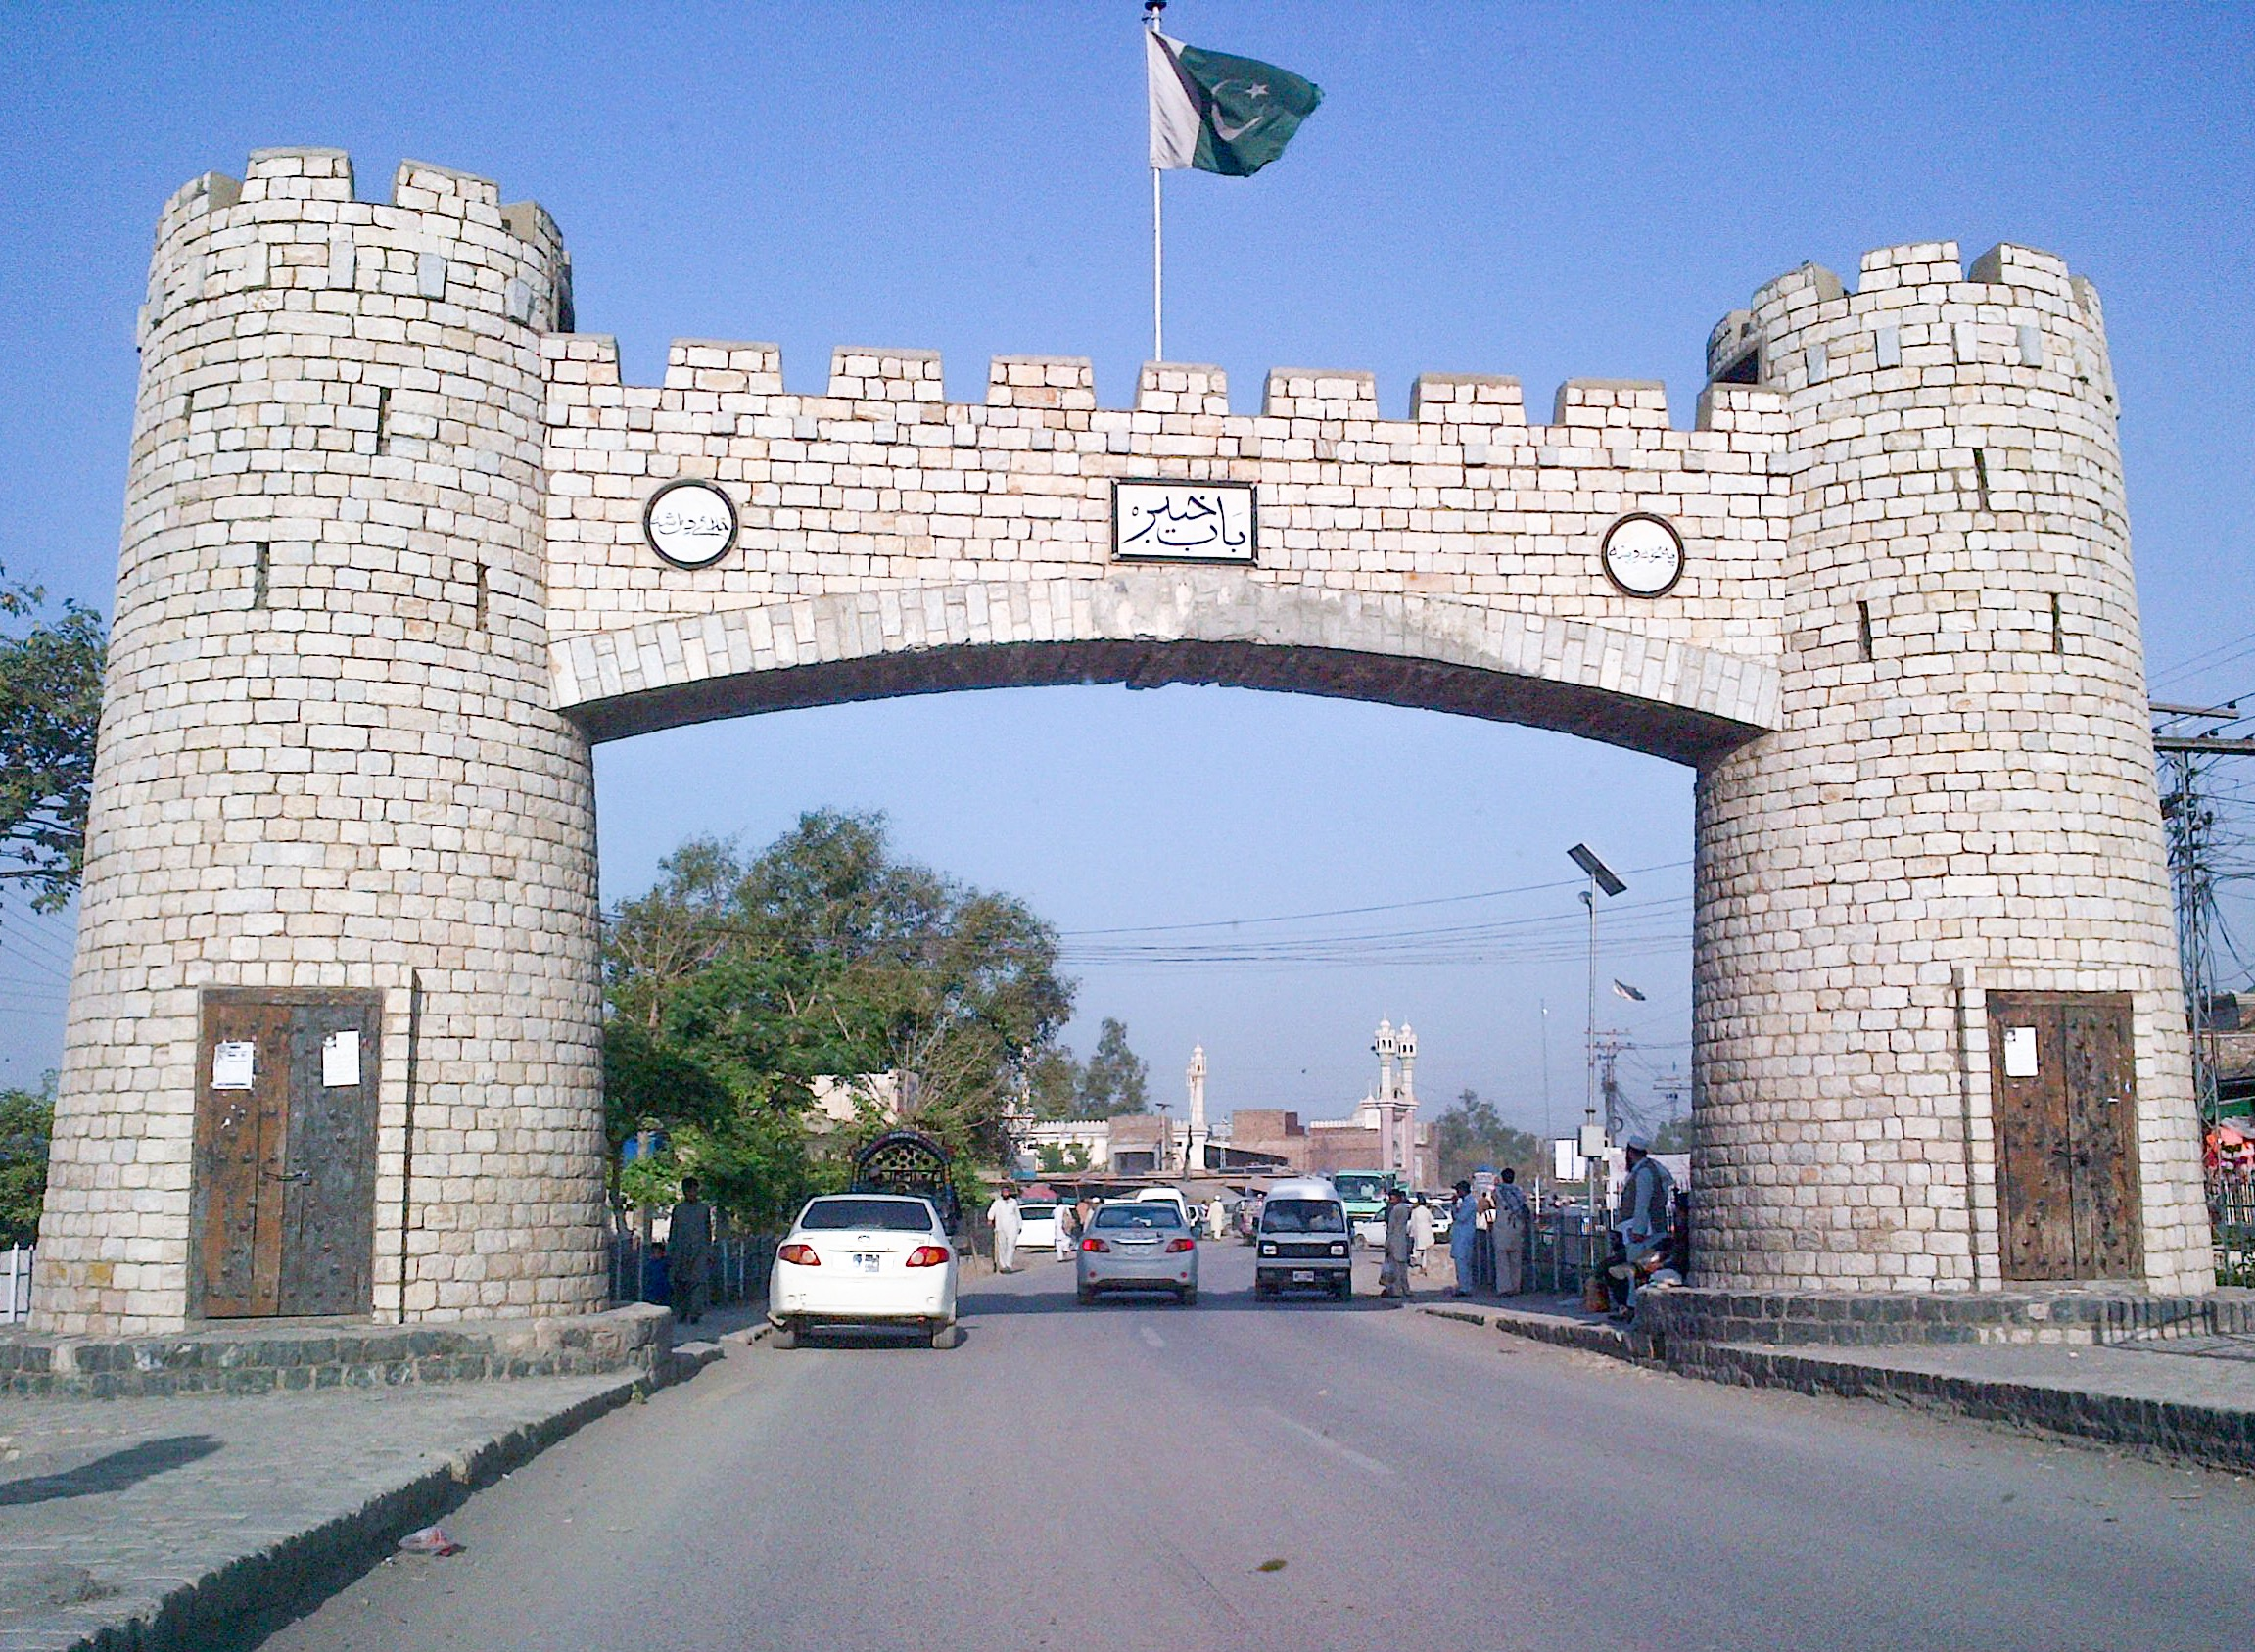 I am going to peshawar meaning in urdu